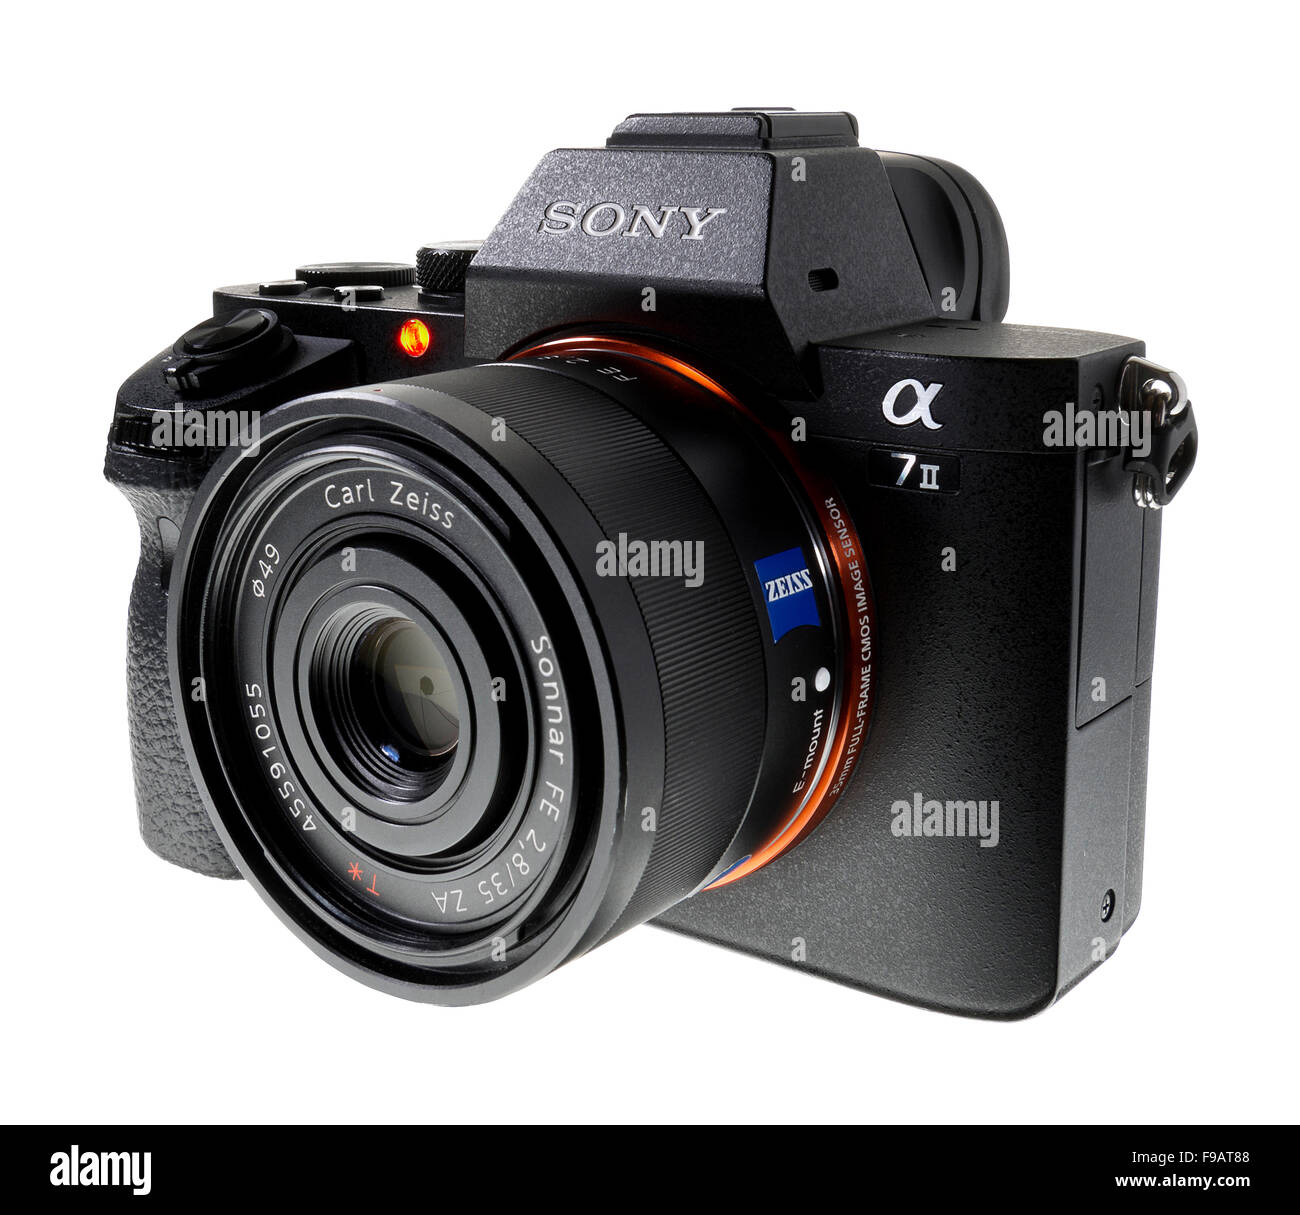 Sony Digital Camera Stockfotos & Sony Digital Camera Bilder - Alamy